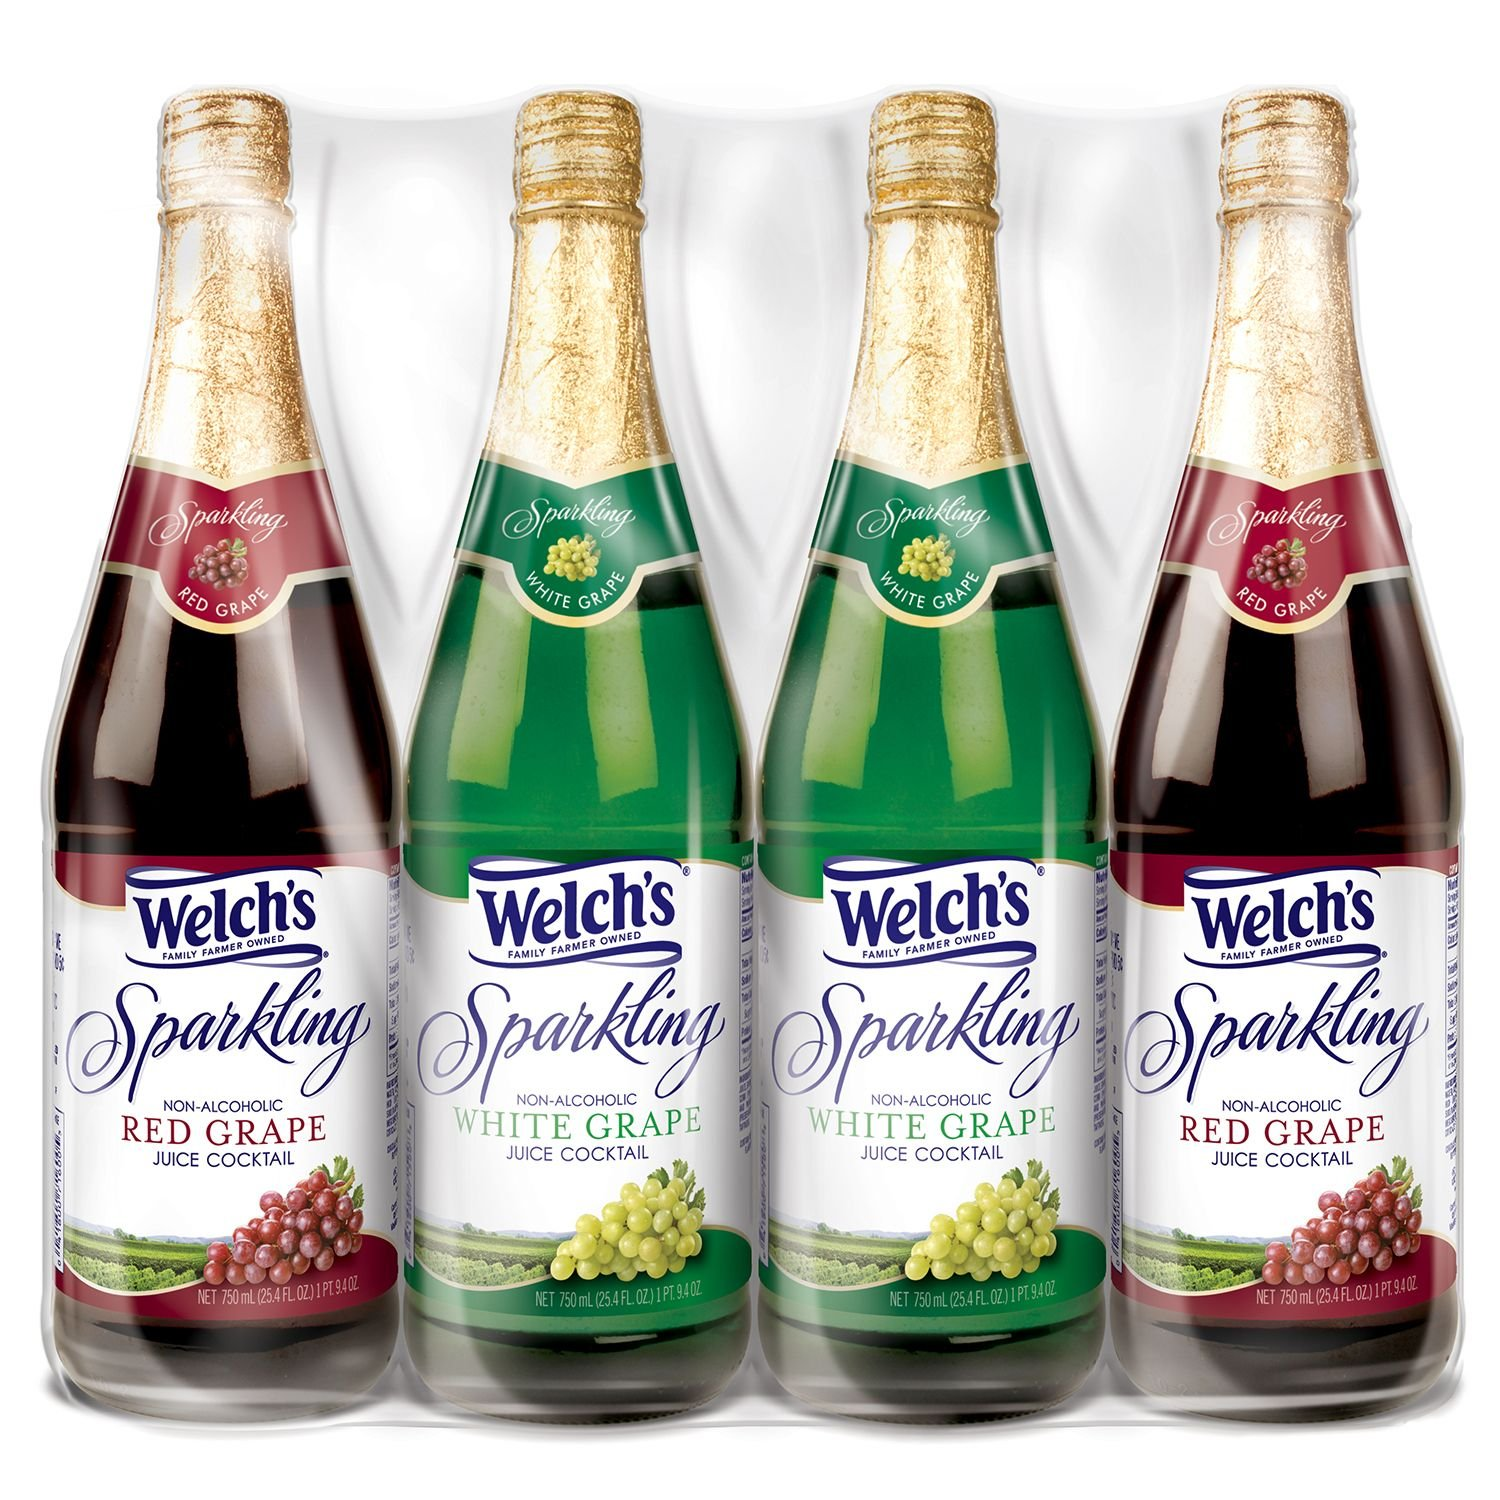 Welch's Sparkling Juice Cocktail Variety Pack (750 ml, 4 ct.) (pack of 6)